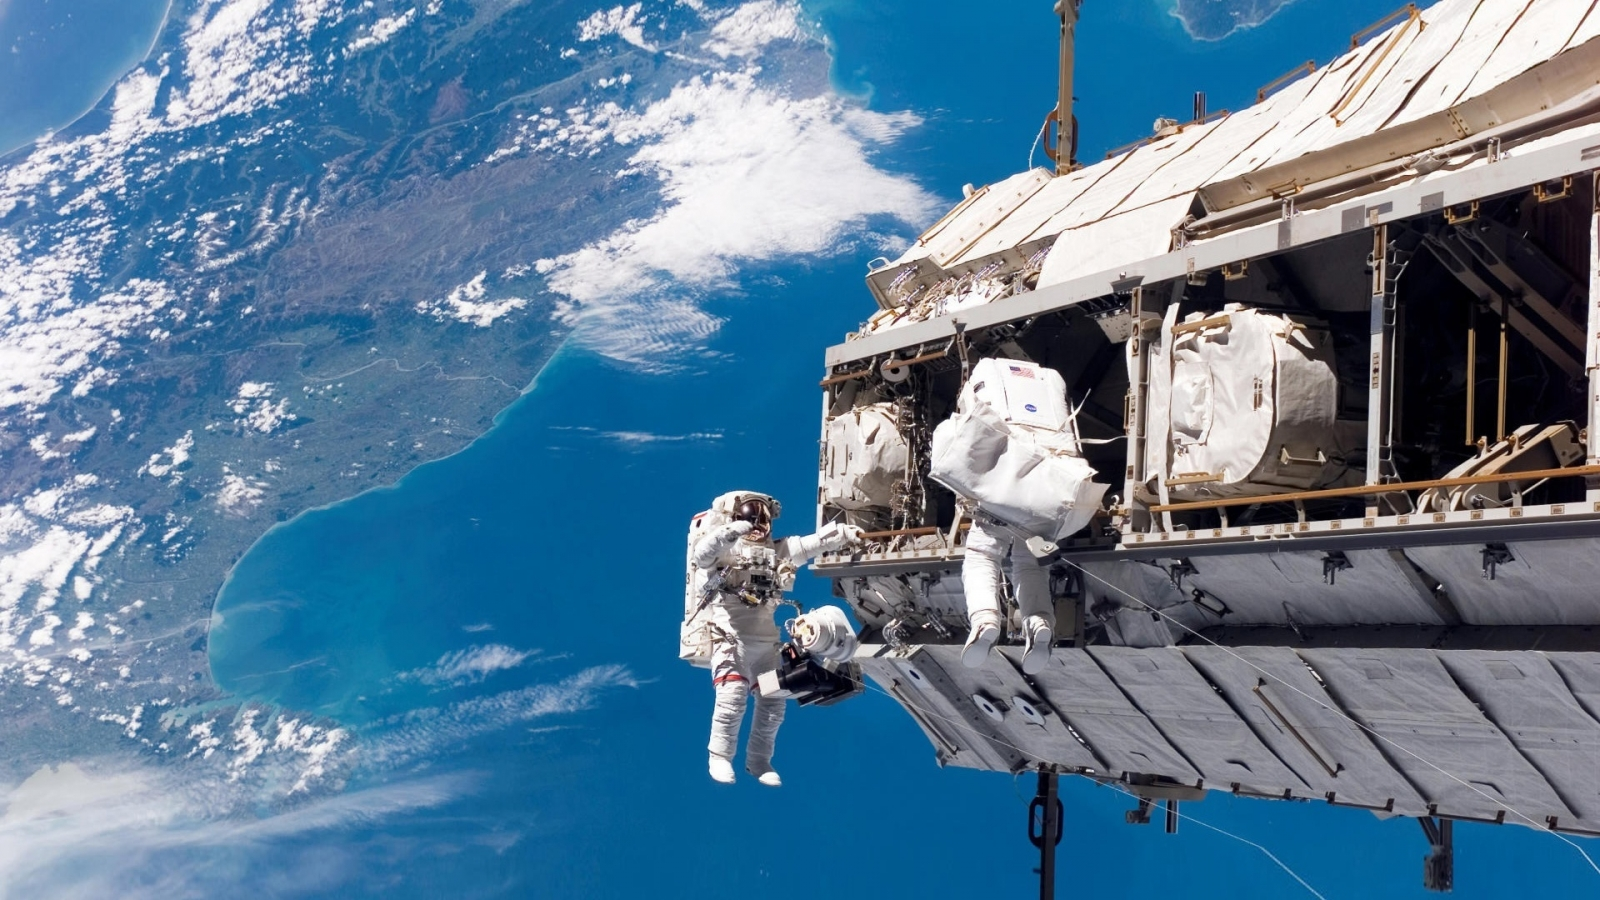 People Space Walk for 1600 x 900 HDTV resolution